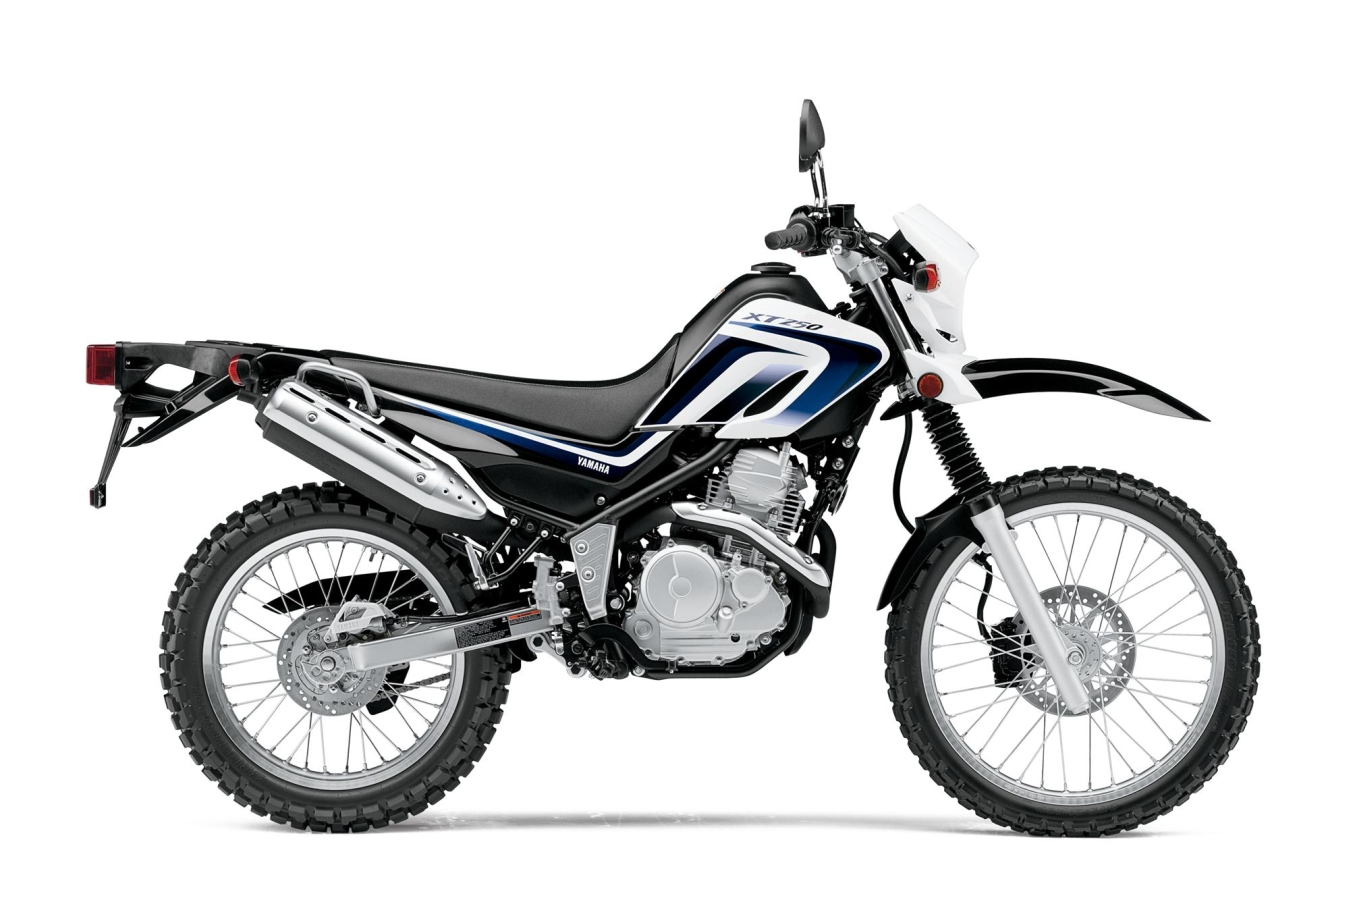 2013 Yamaha XT250 Finally Gets Fuel Injection - autoevolution